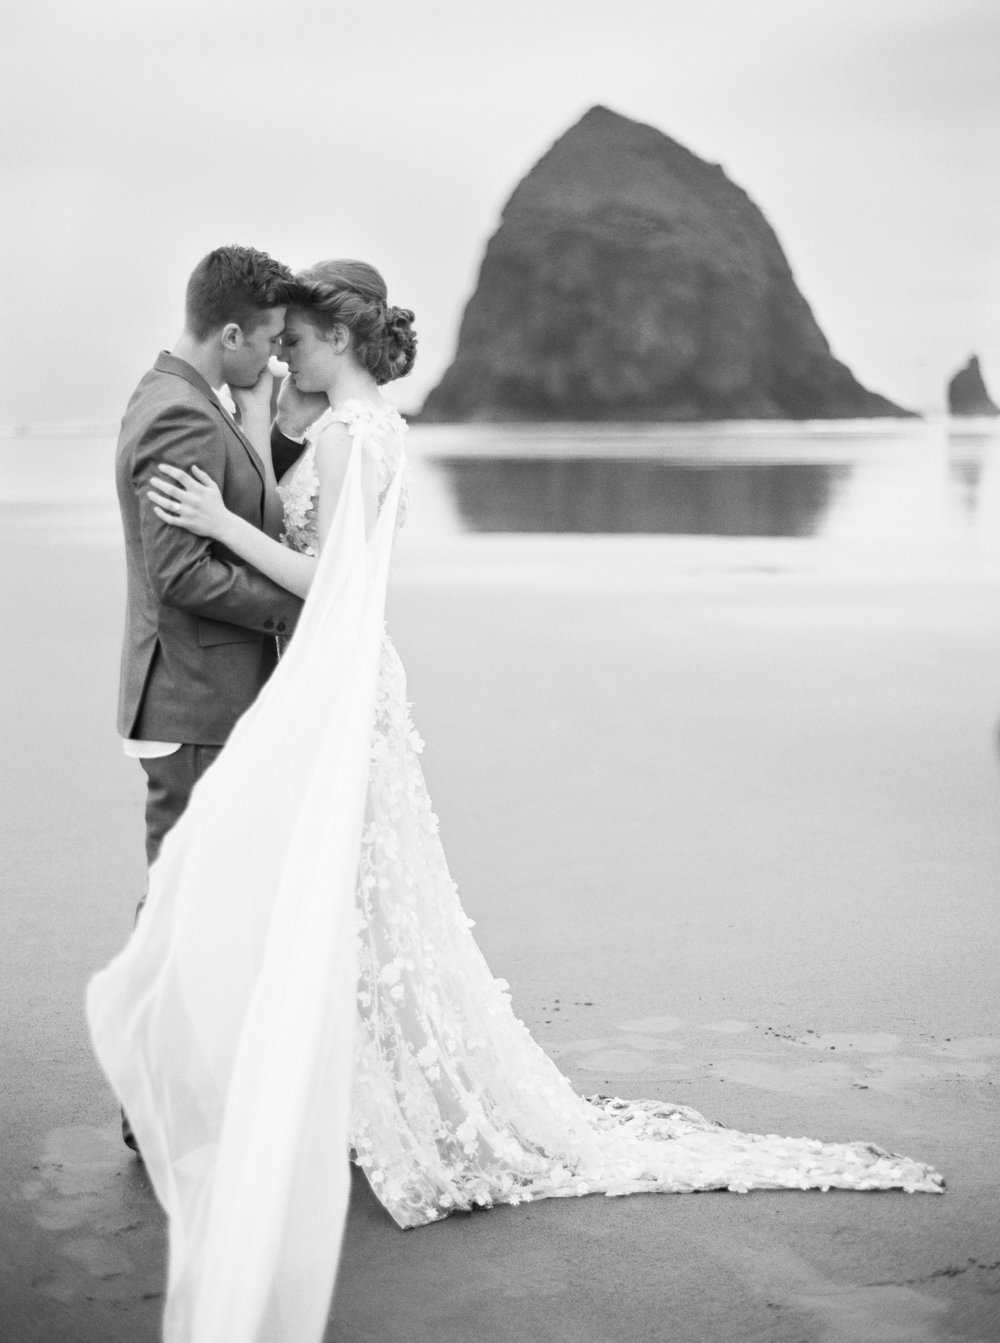 012@outlivecreative_cannon_beach_destination_wedding_photographer_&_videographer.jpg